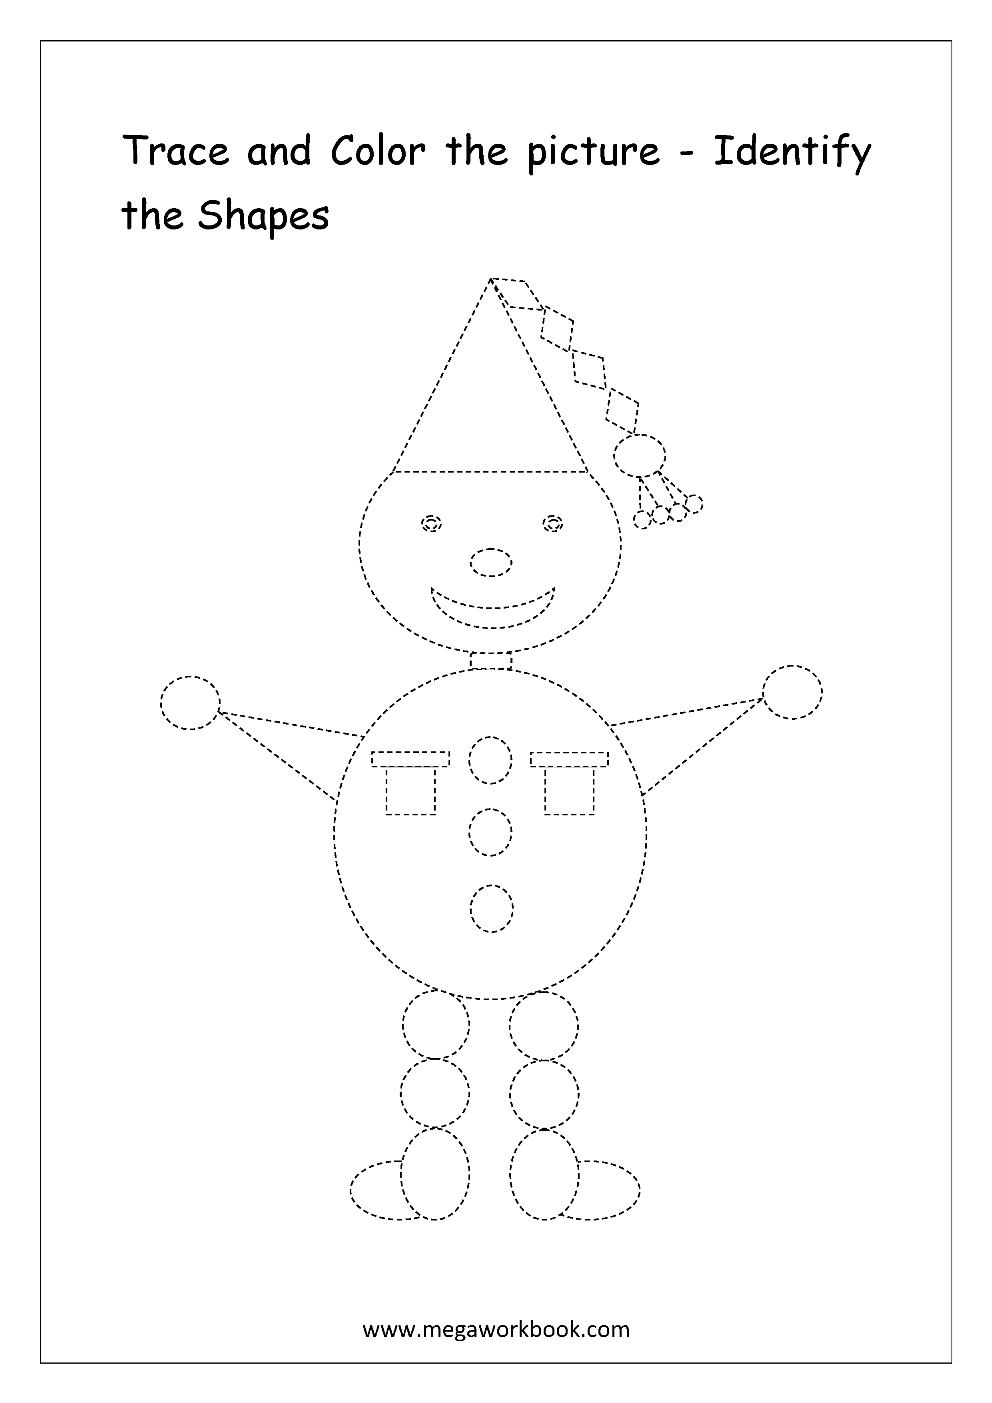 worksheet Identify Shapes Worksheet free shapes worksheets identify the megaworkbook joker